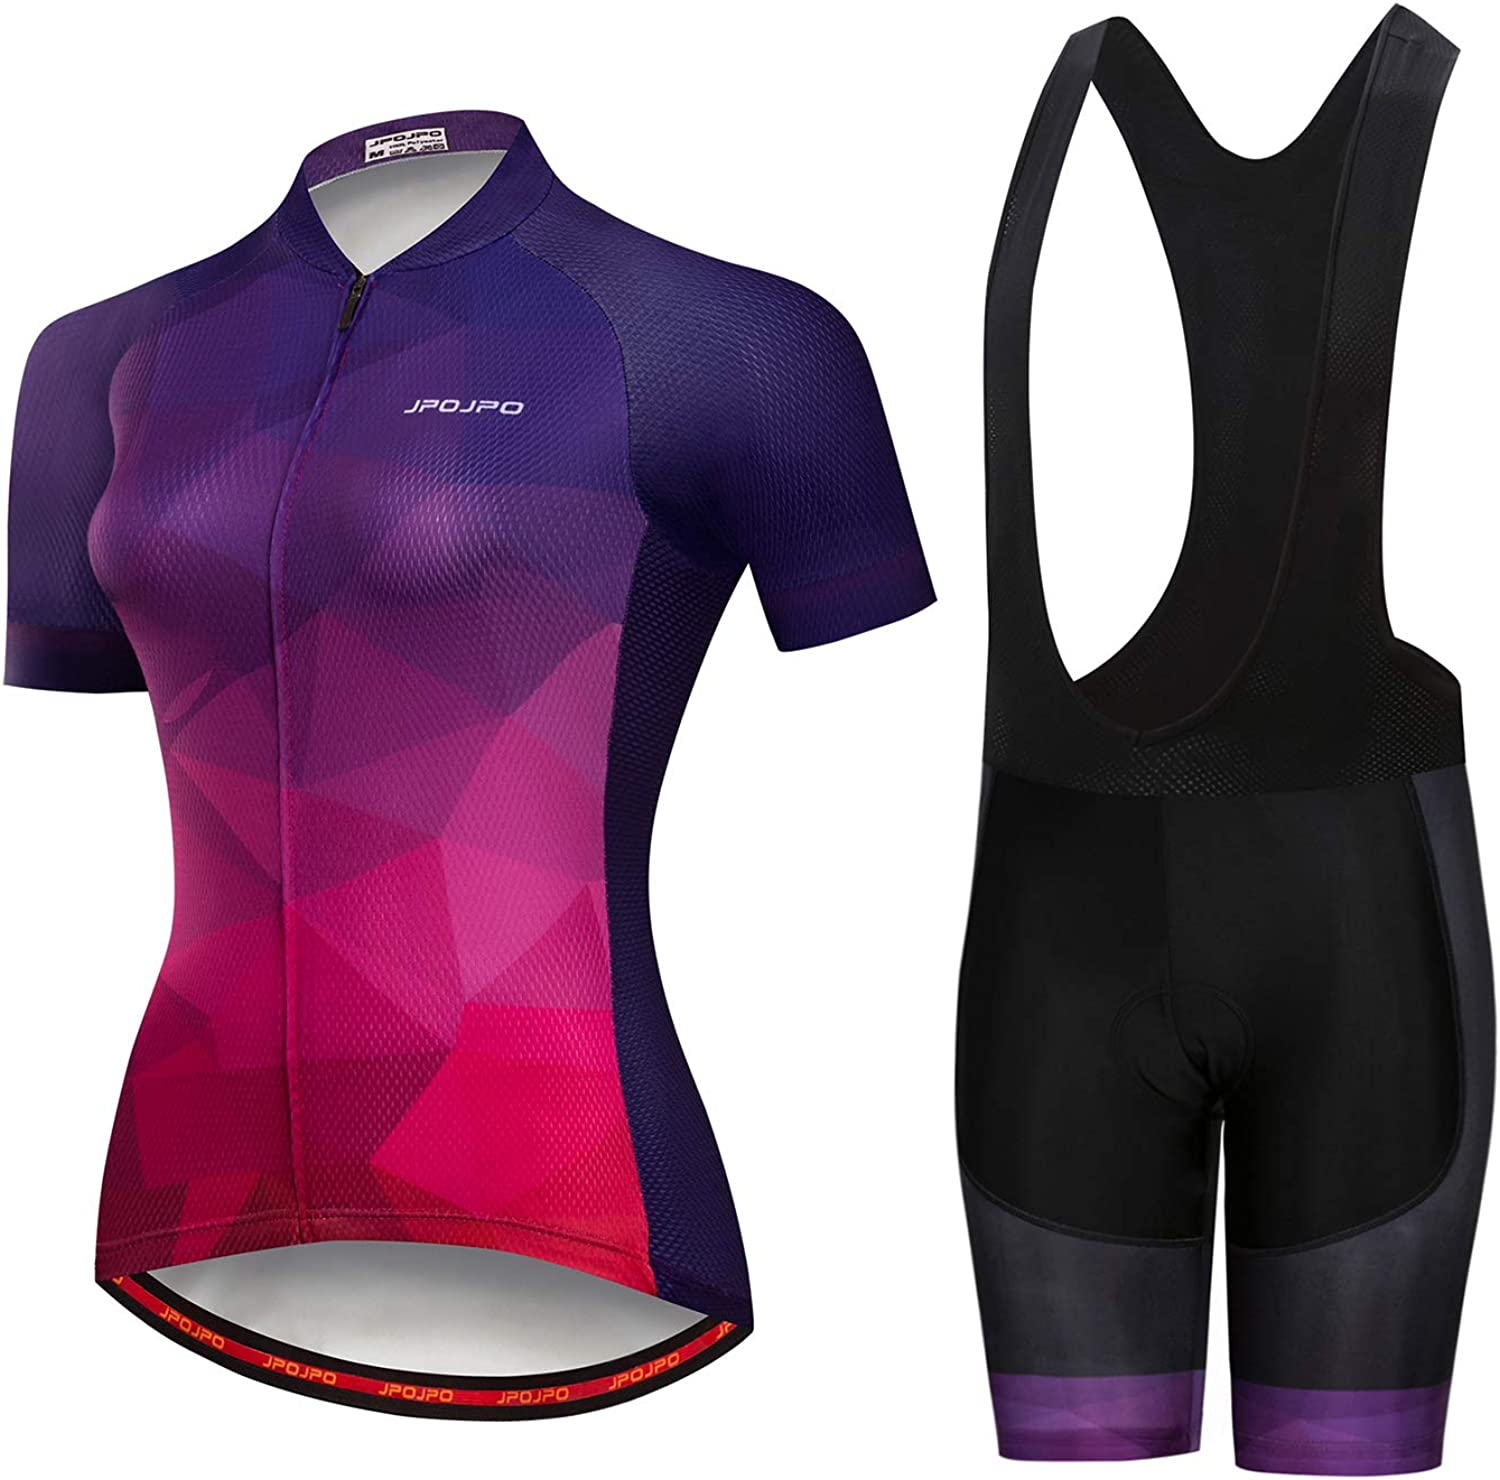 Spring new work one after another Weimostar Women's Cycling Jersey Shorts Latest item Sleeve Reflec Sets Short